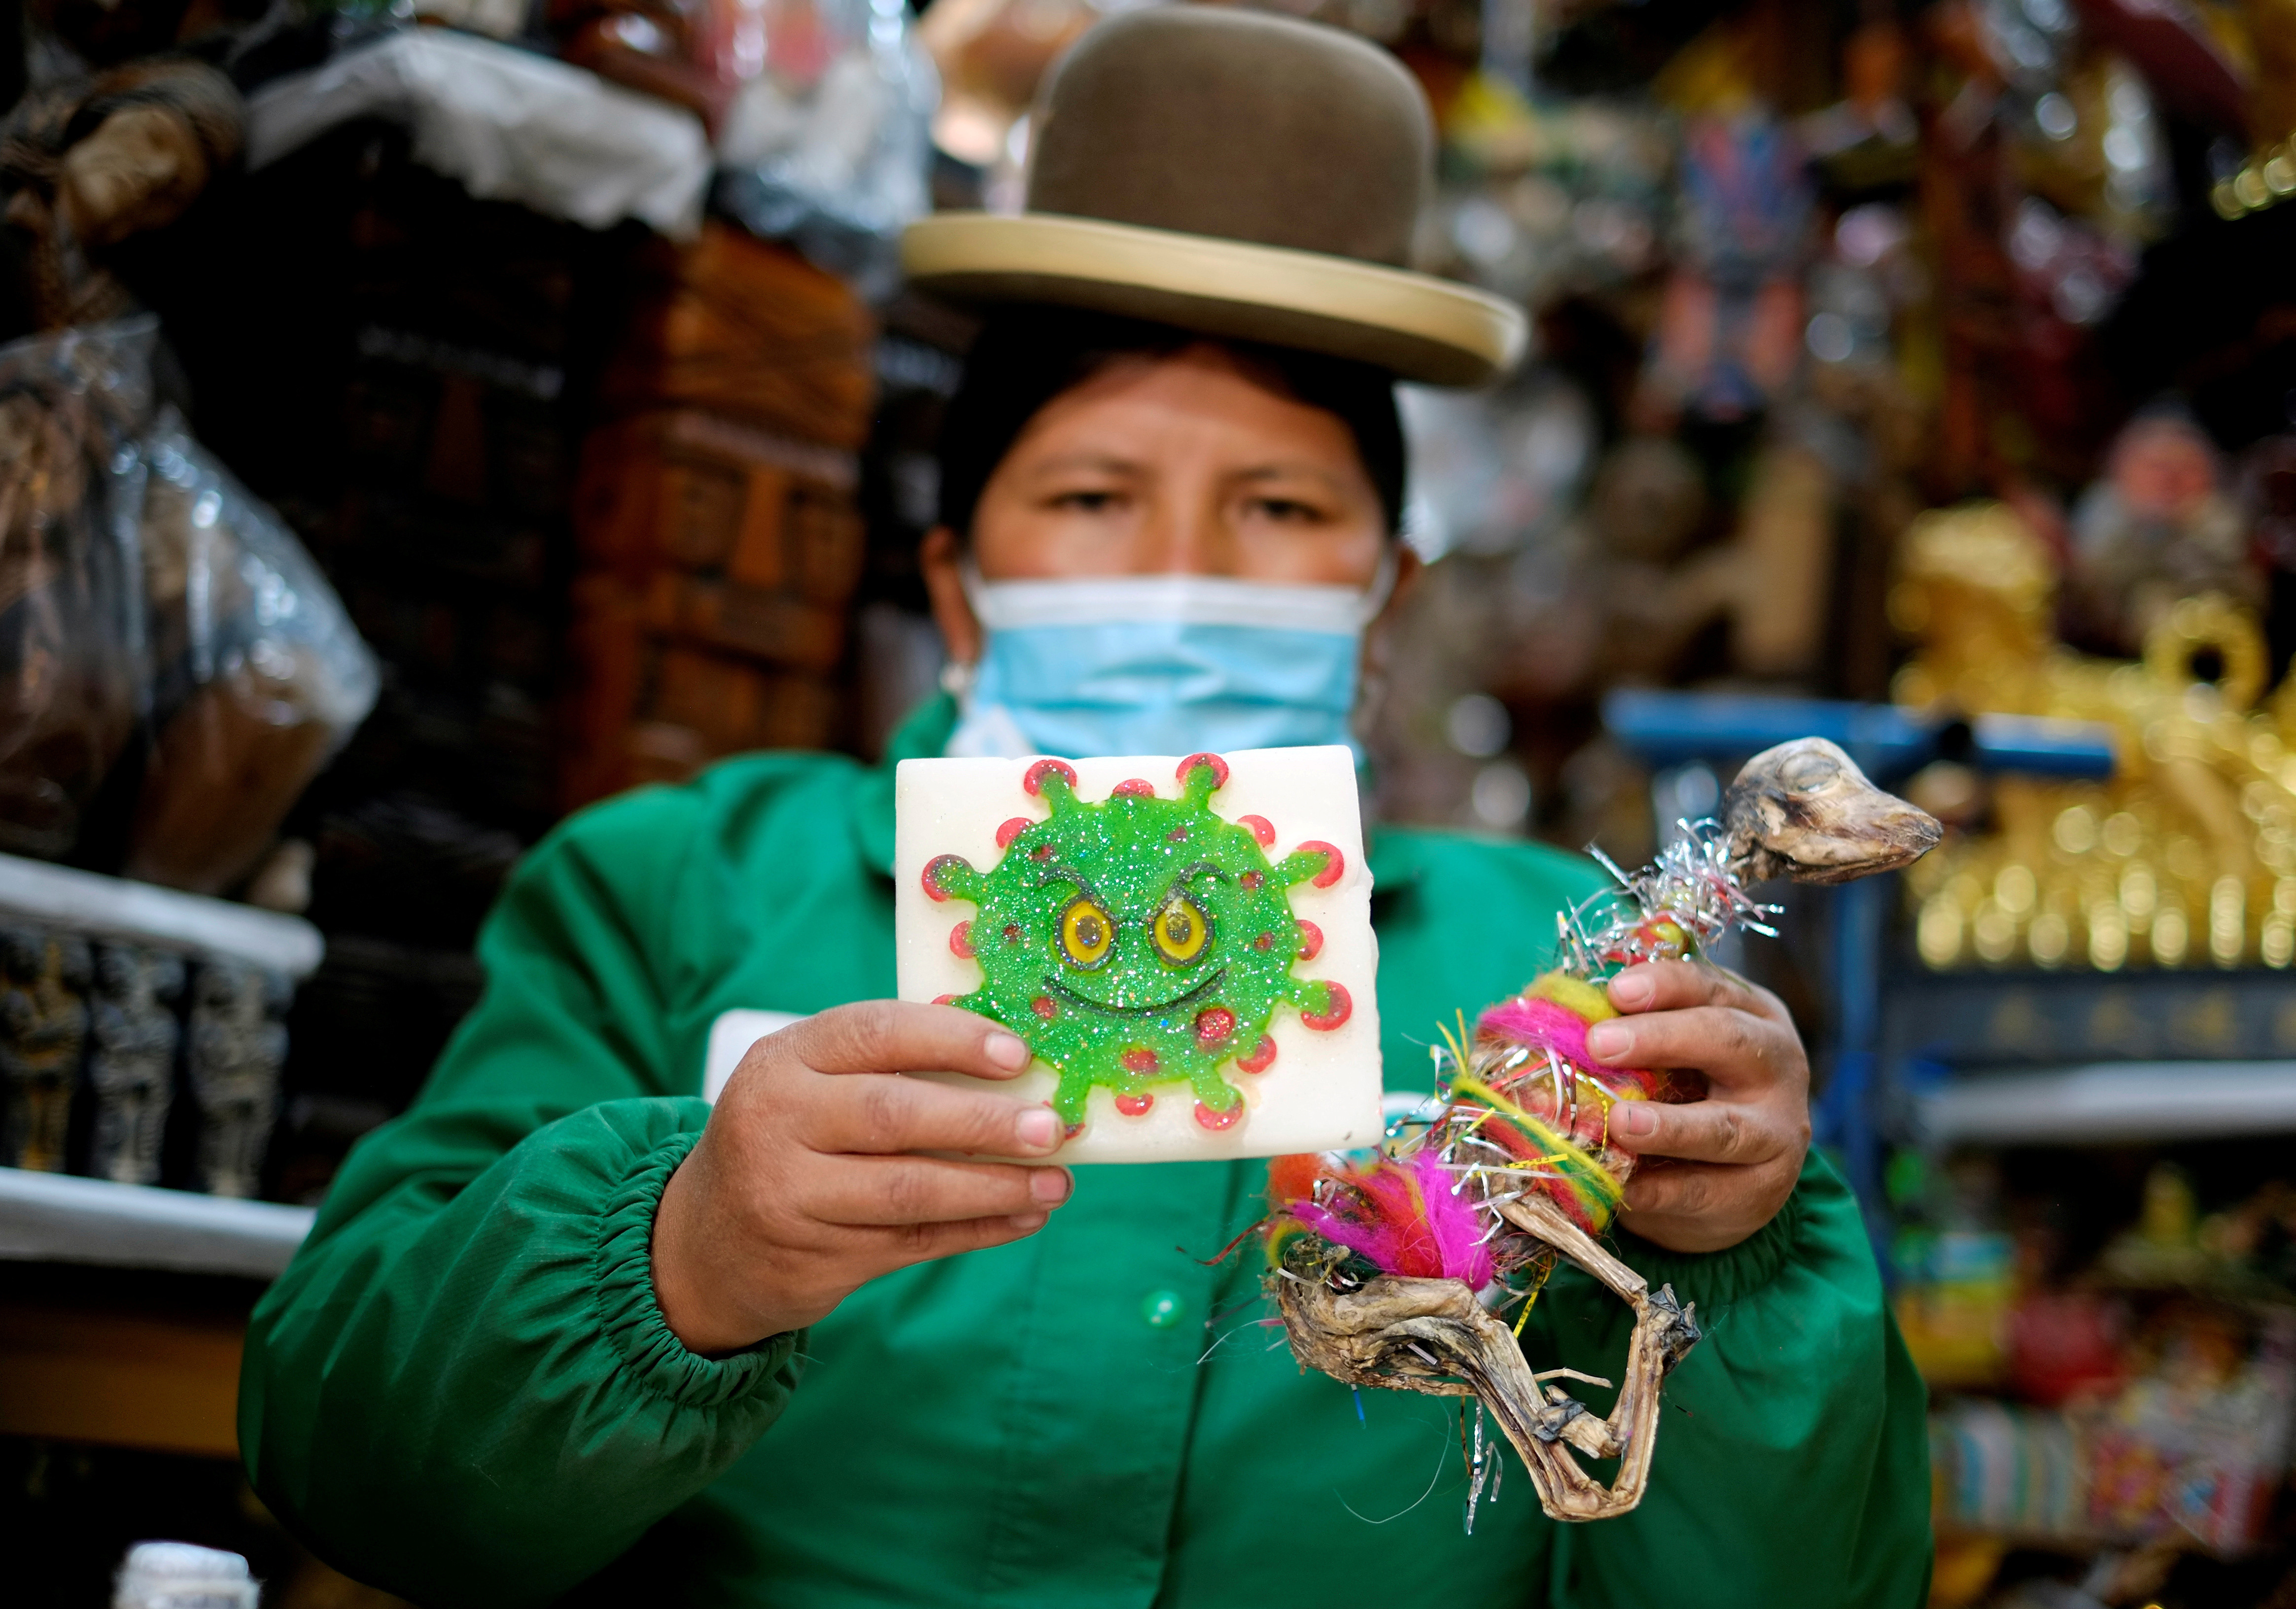 Victoria Acarapi holds a figure of the coronavirus and a llama fetus as part of an offering during the Pachamama (Mother Earth) month at the witches market, amid the outbreak of the coronavirus disease (COVID-19) in La Paz, Bolivia August 1, 2020. Picture taken August 1, 2020. REUTERS/David Mercado     TPX IMAGES OF THE DAY - RC2J6I9G3XZ6